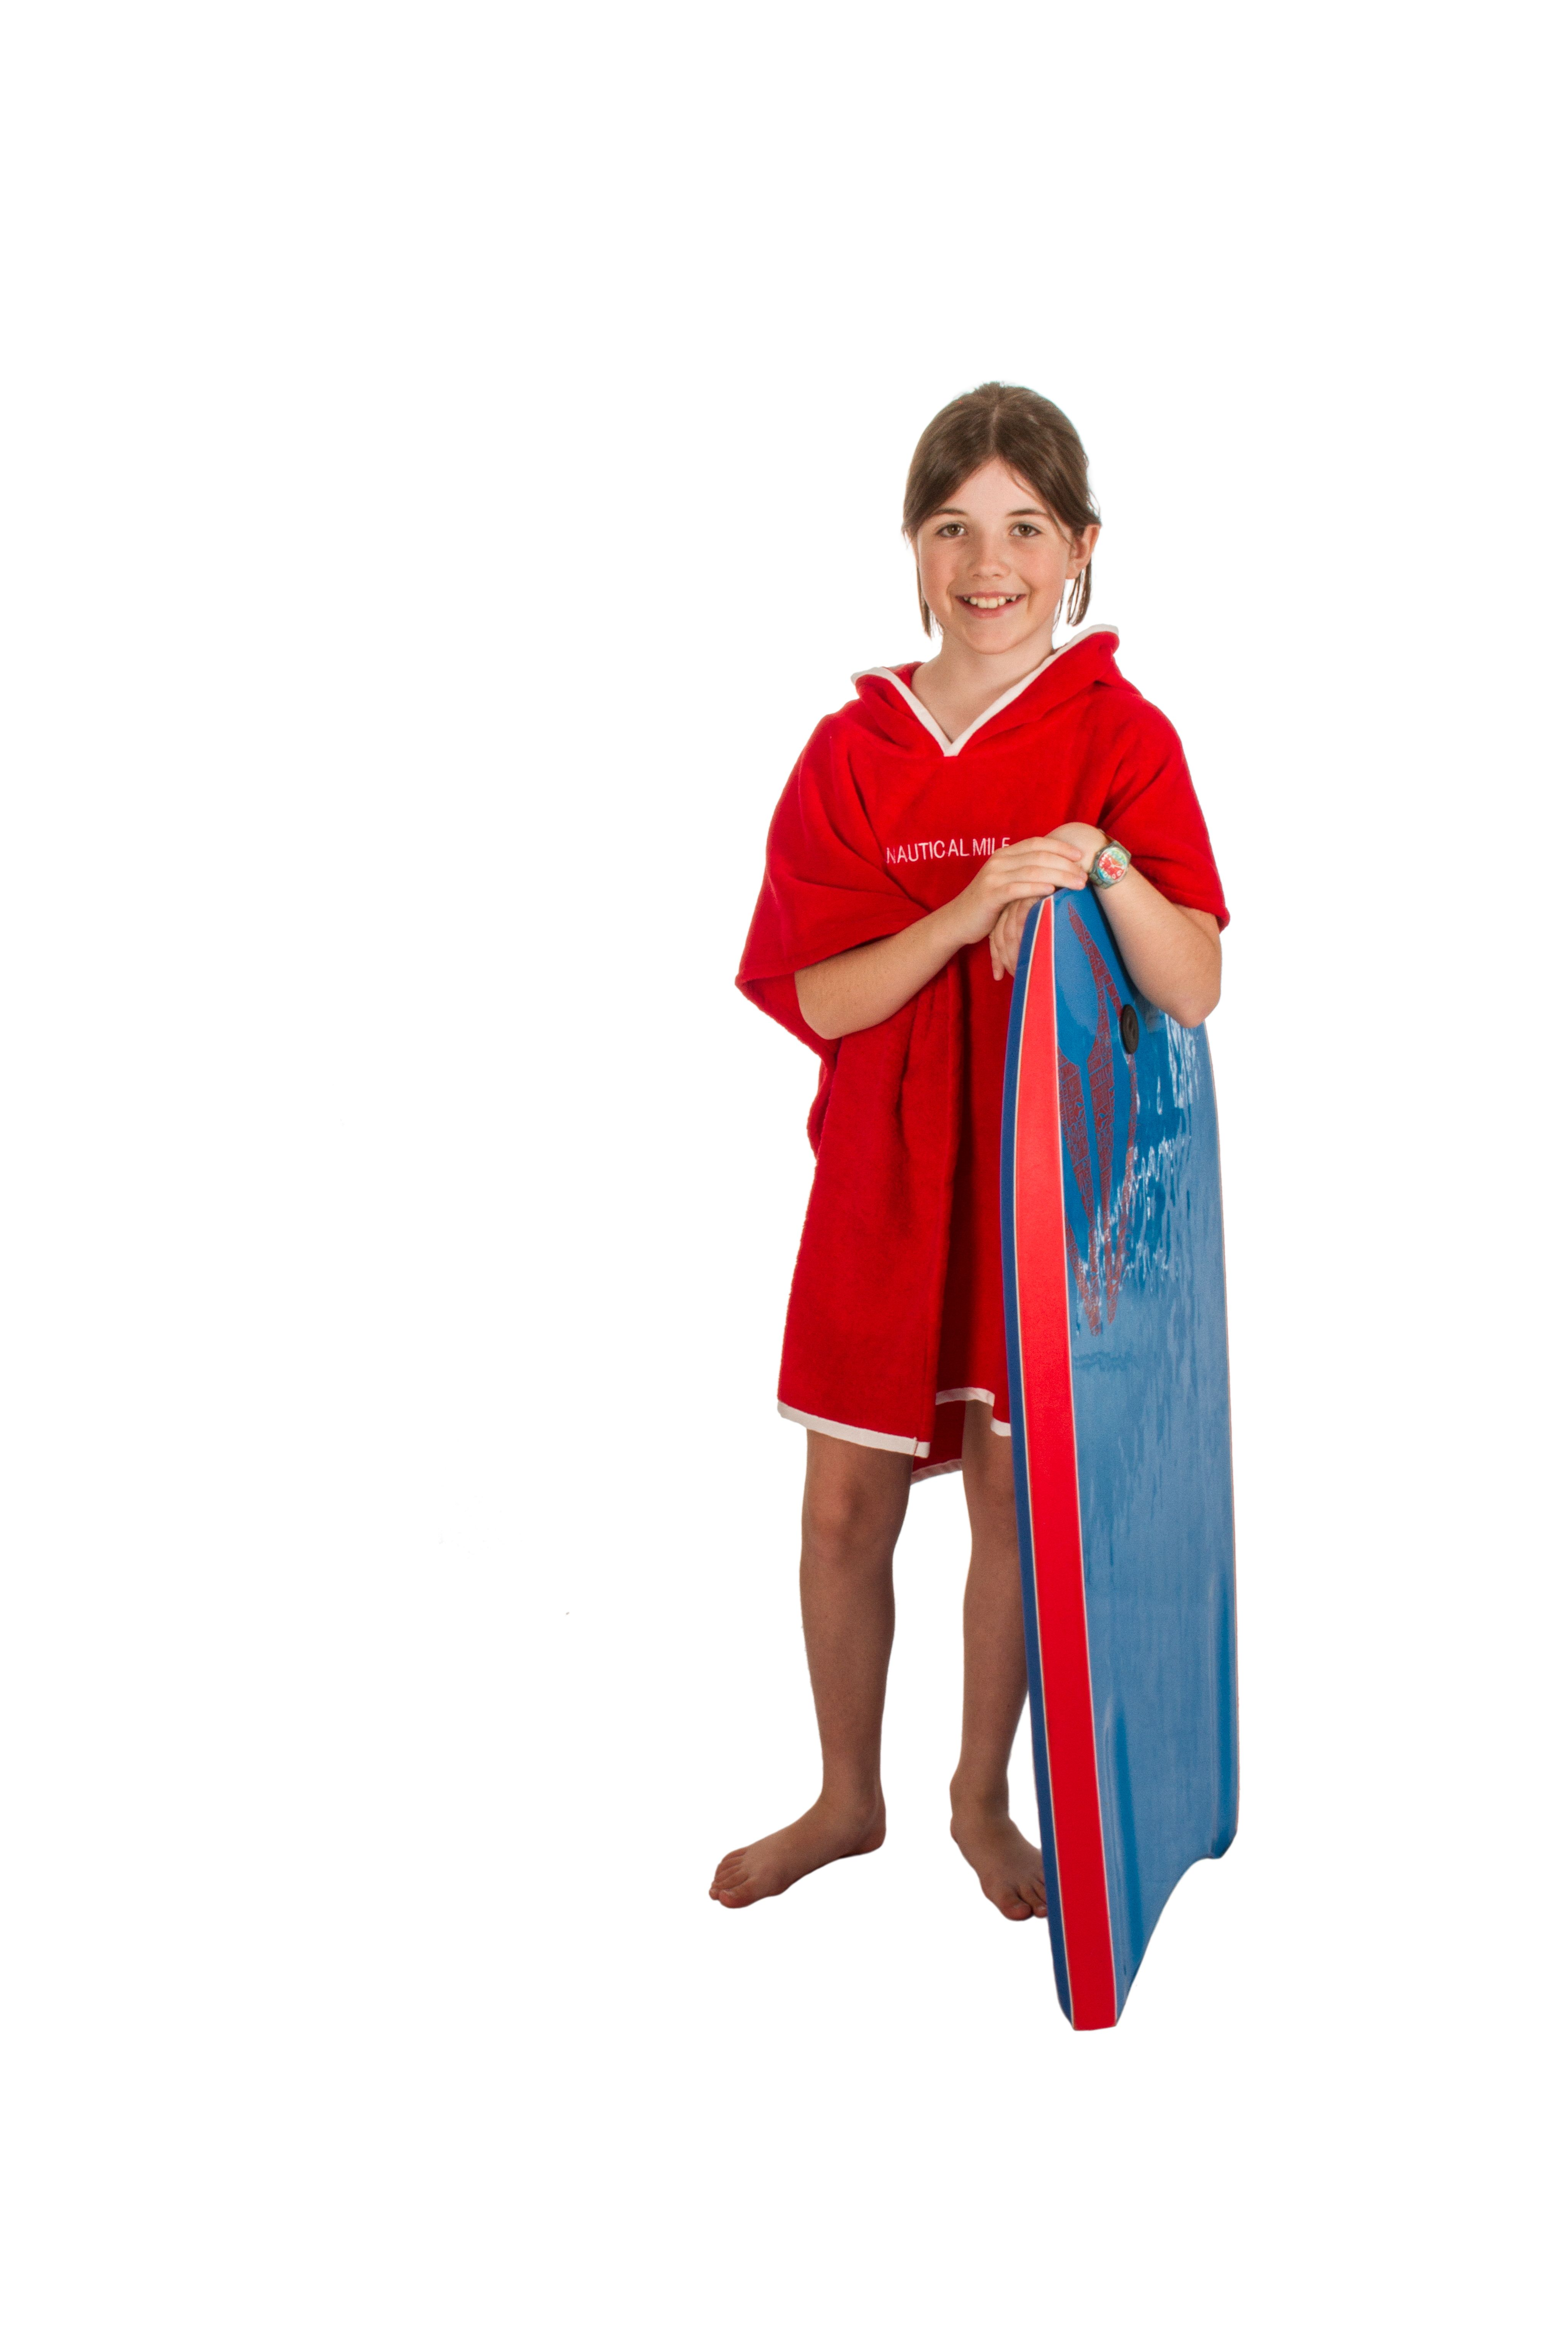 Hooded Beach Towels For Kids Teens And Adults Nauticalmile Com